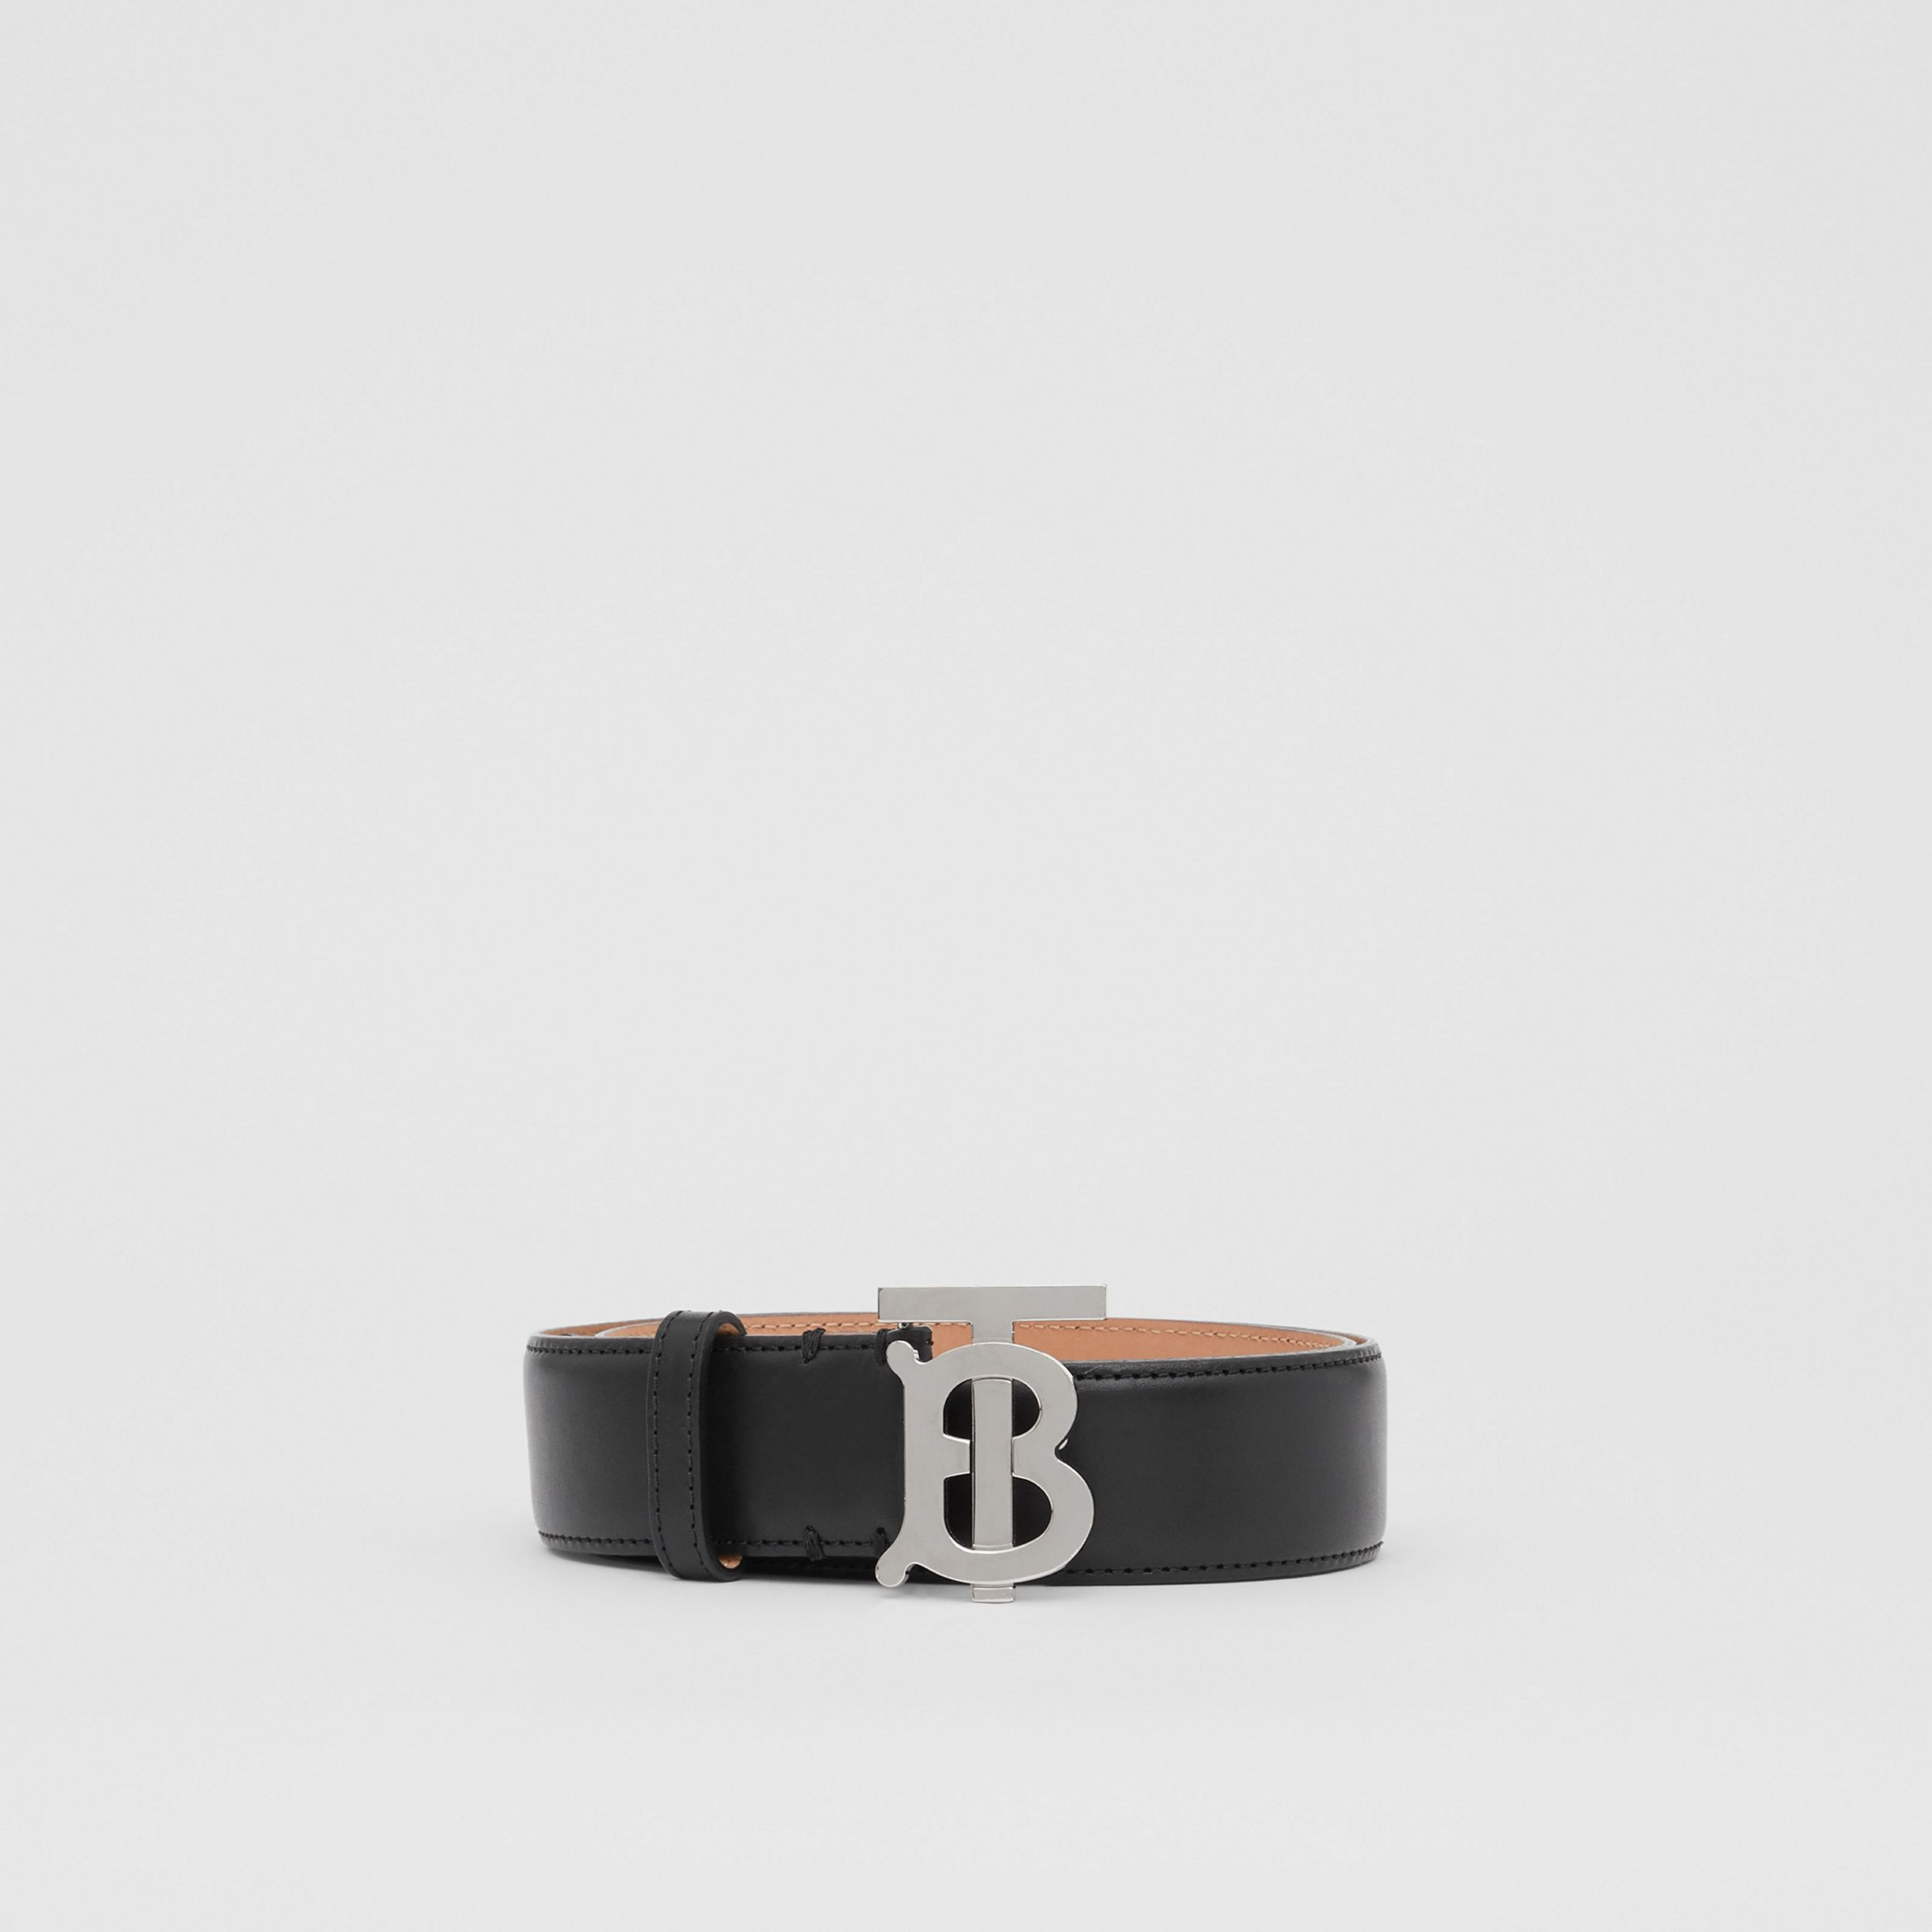 Monogram Motif Leather Belt in Black/palladium - Women | Burberry - 4